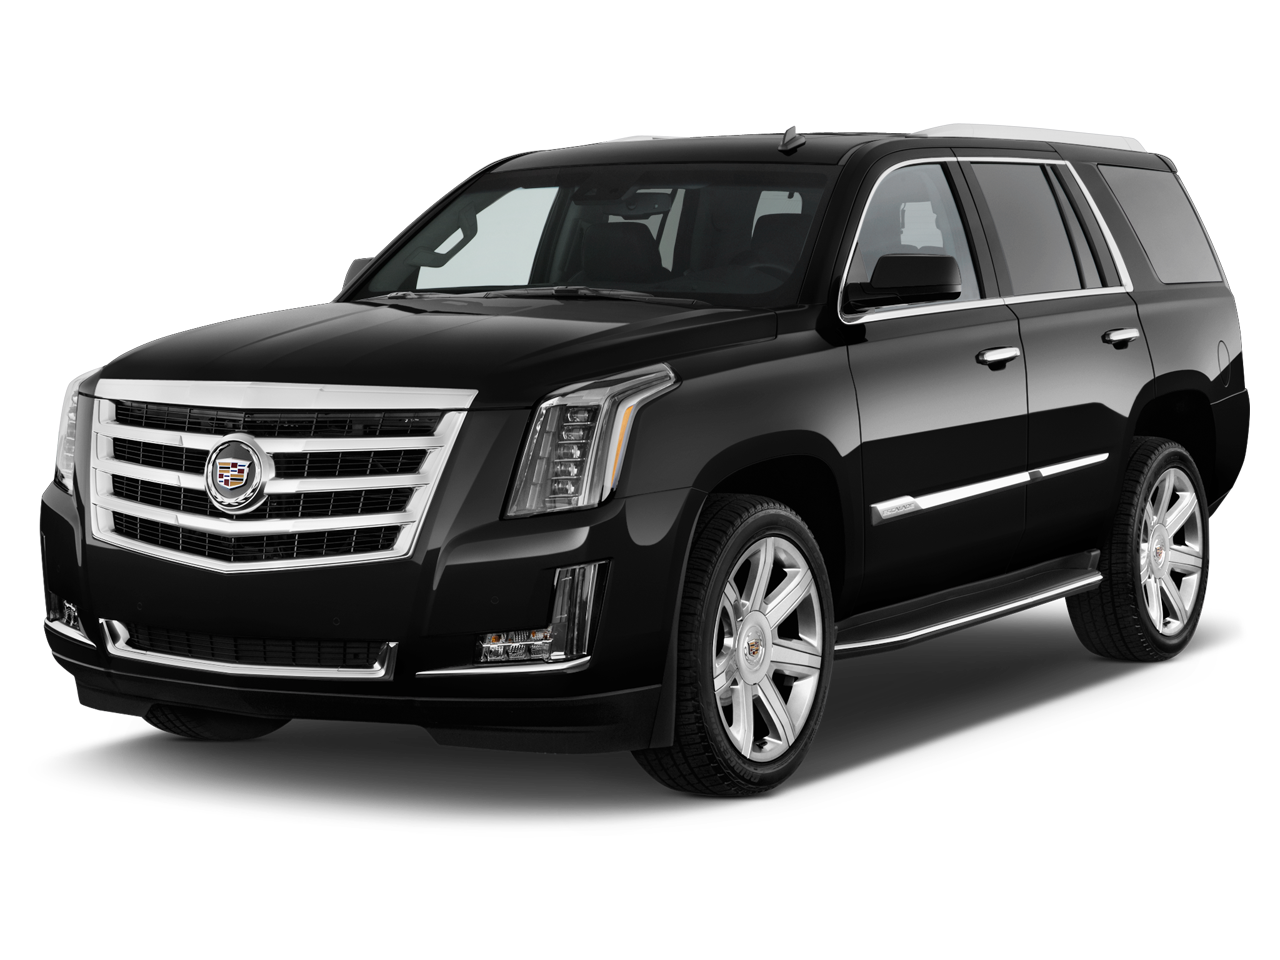 Cars Suvs Transportation Consultants